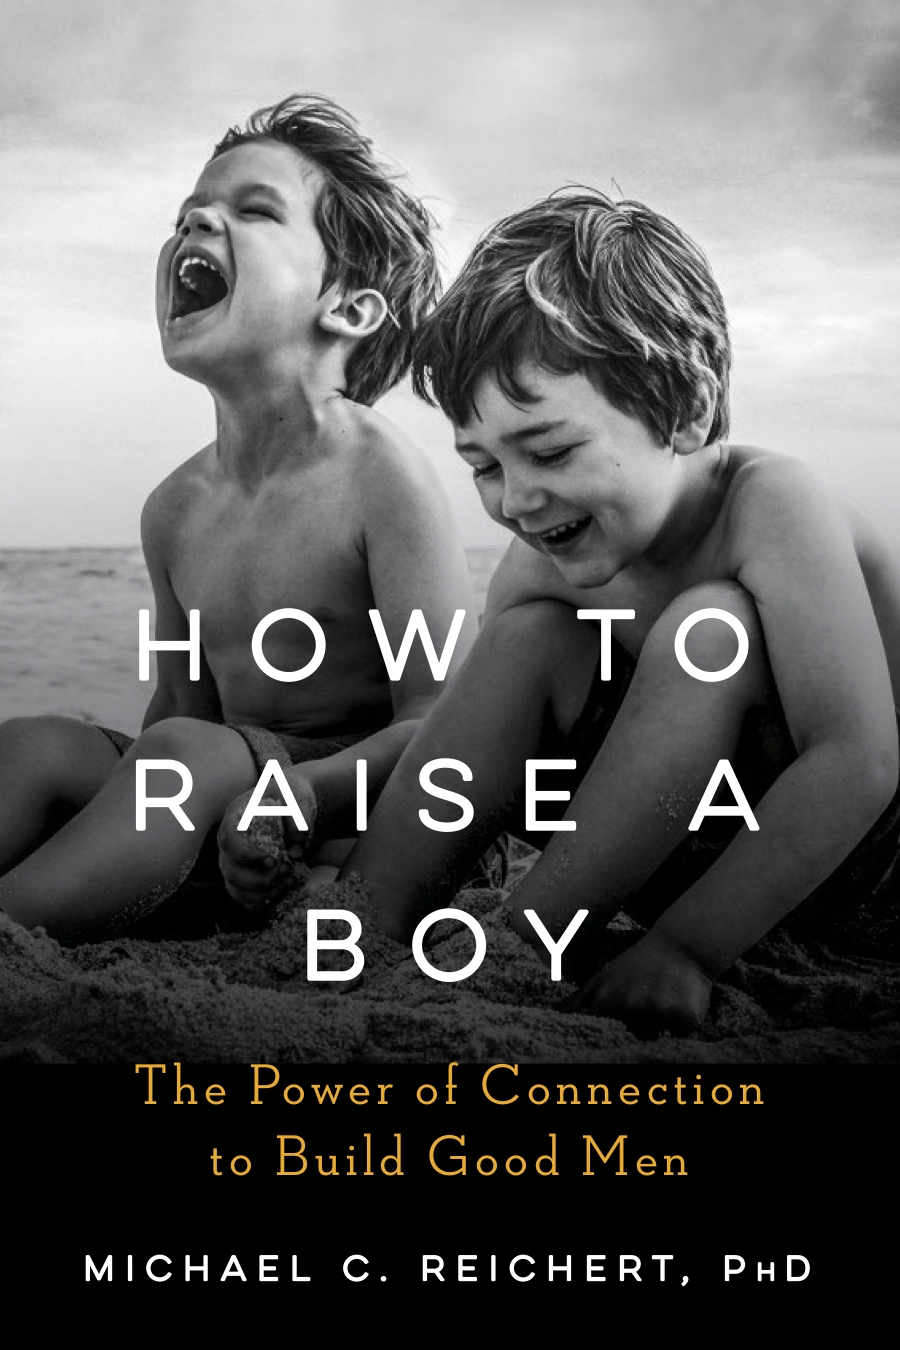 How to Raise a Boy: The Power of Connection to Build Good Men - A much-needed new roadmap for helping boys grow into strong, emotionally intelligent, and compassionate men in an increasingly complex world.In this groundbreaking book, a leading psychologist and researcher of the journey from boyhood to manhood reveals how narrow conceptions of what it means to be a